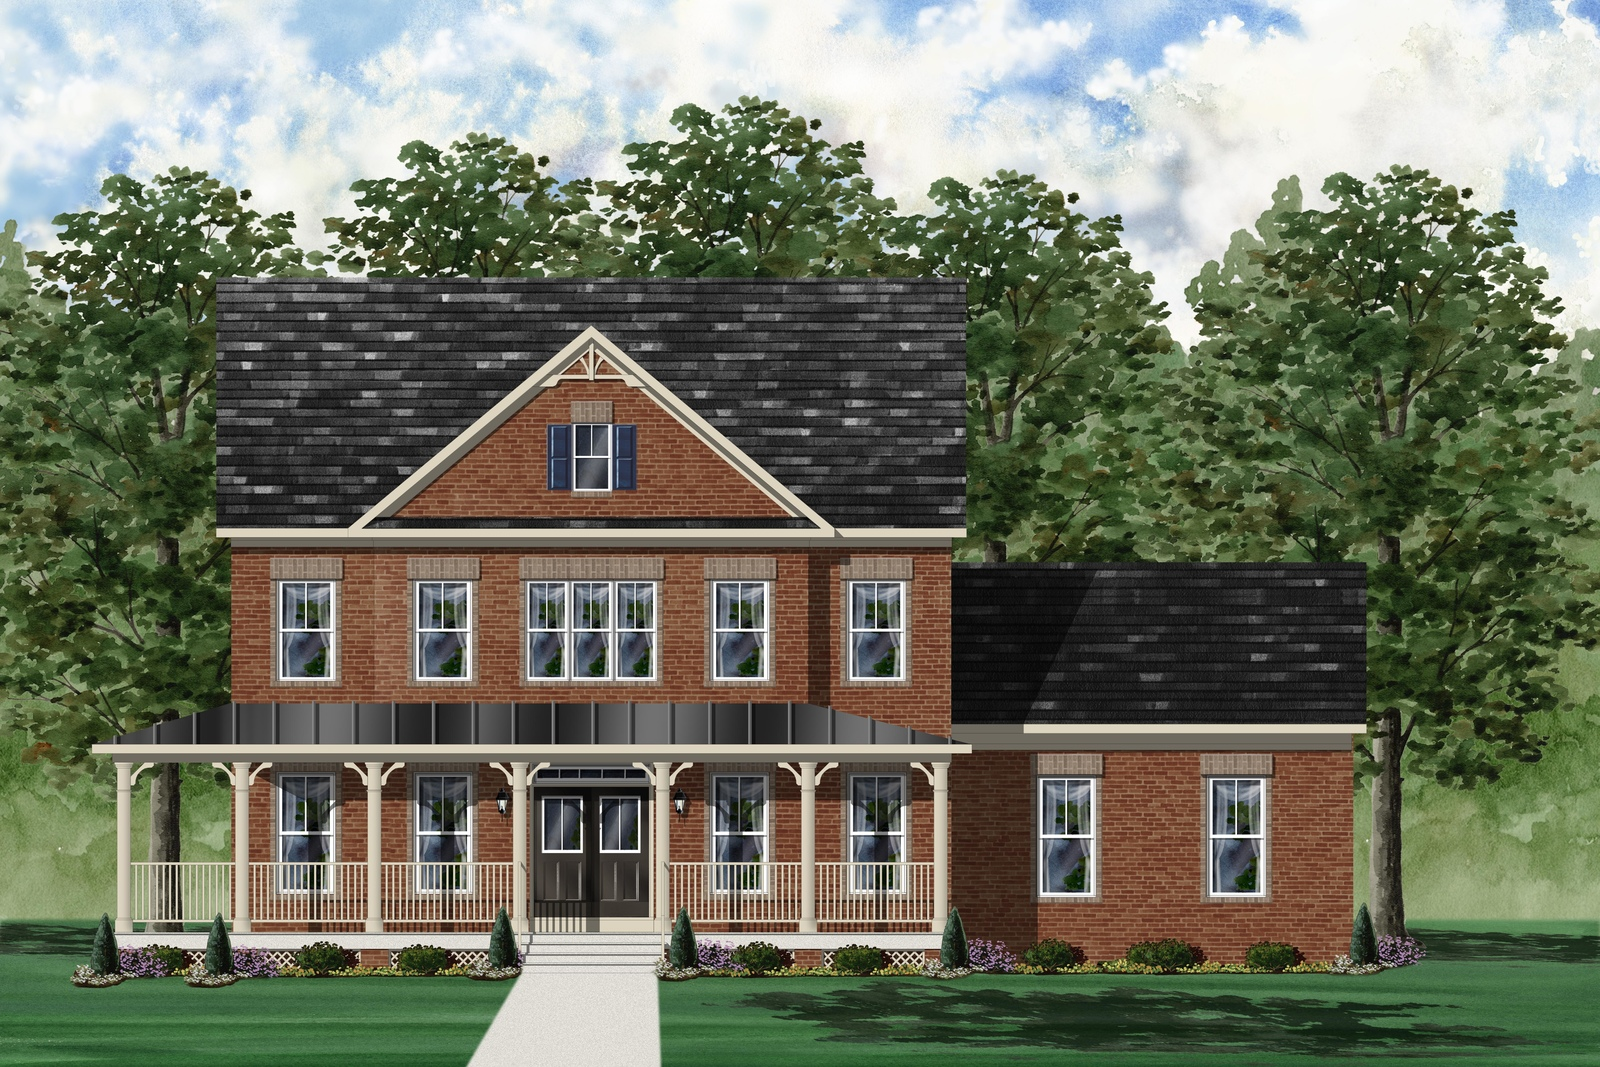 NVHomes Beaconsfield April 2016 Brick